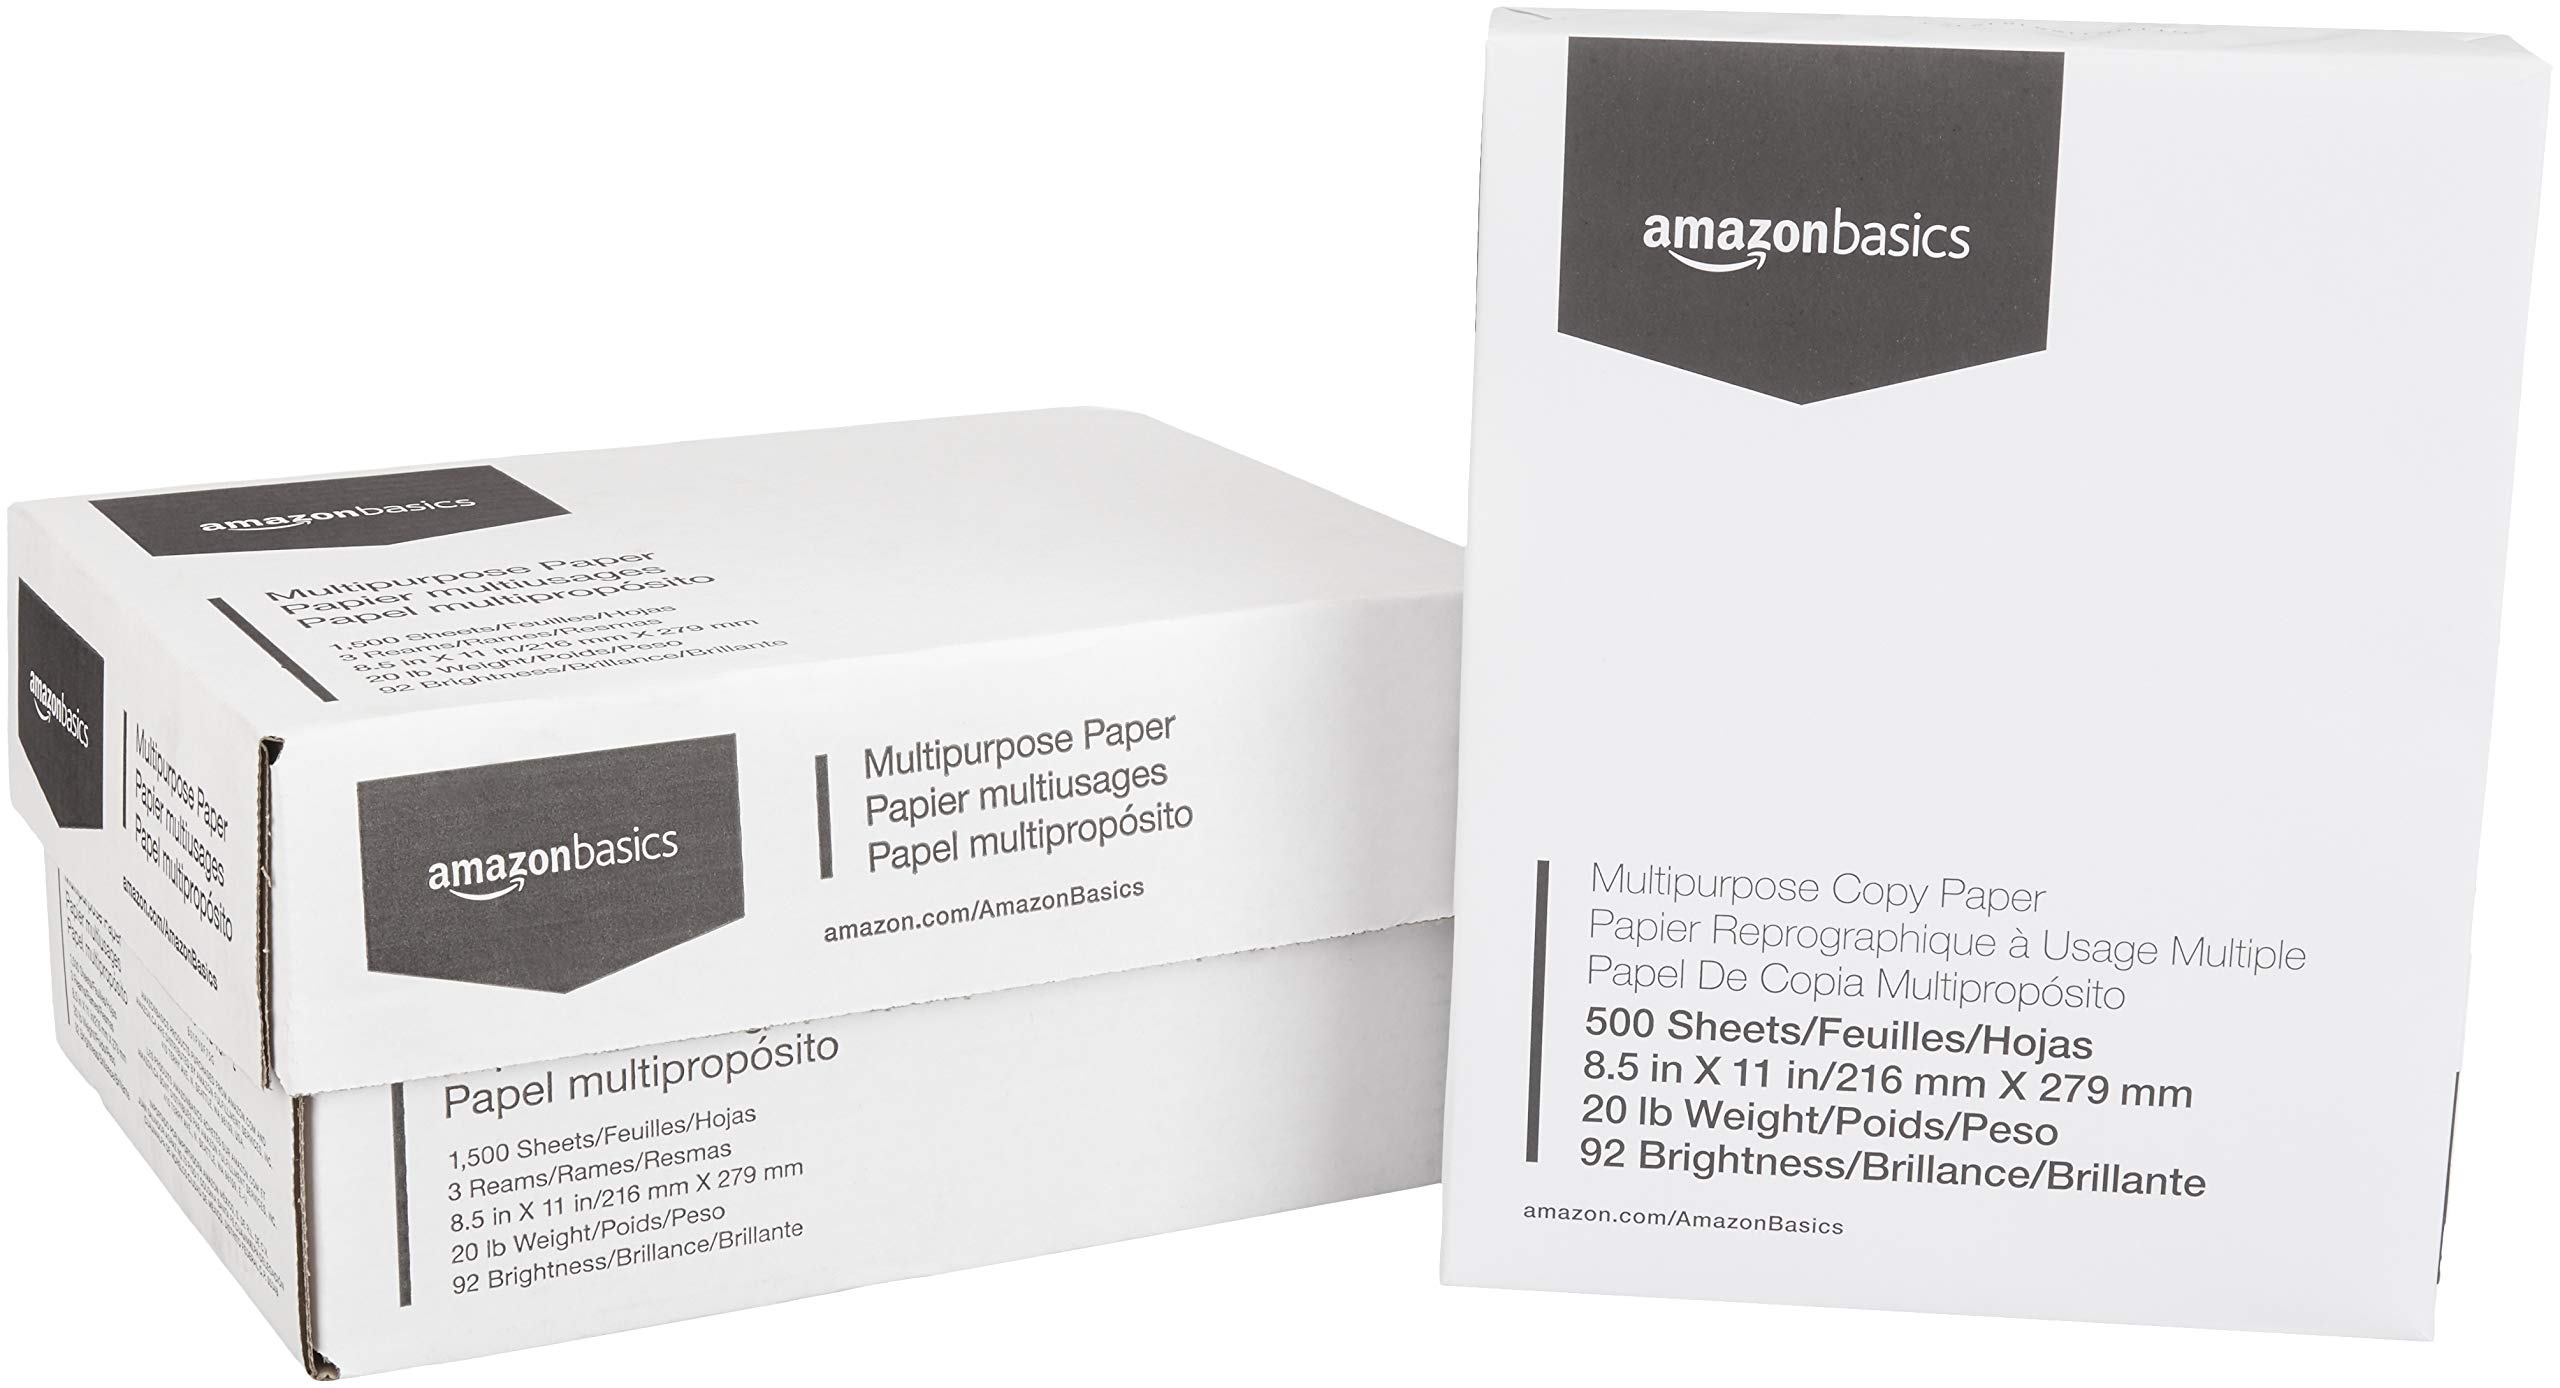 AmazonBasics 92 Bright Multipurpose Copy Paper - 8.5 x 11 Inches, 3 Ream Case (1,500 Sheets) product image